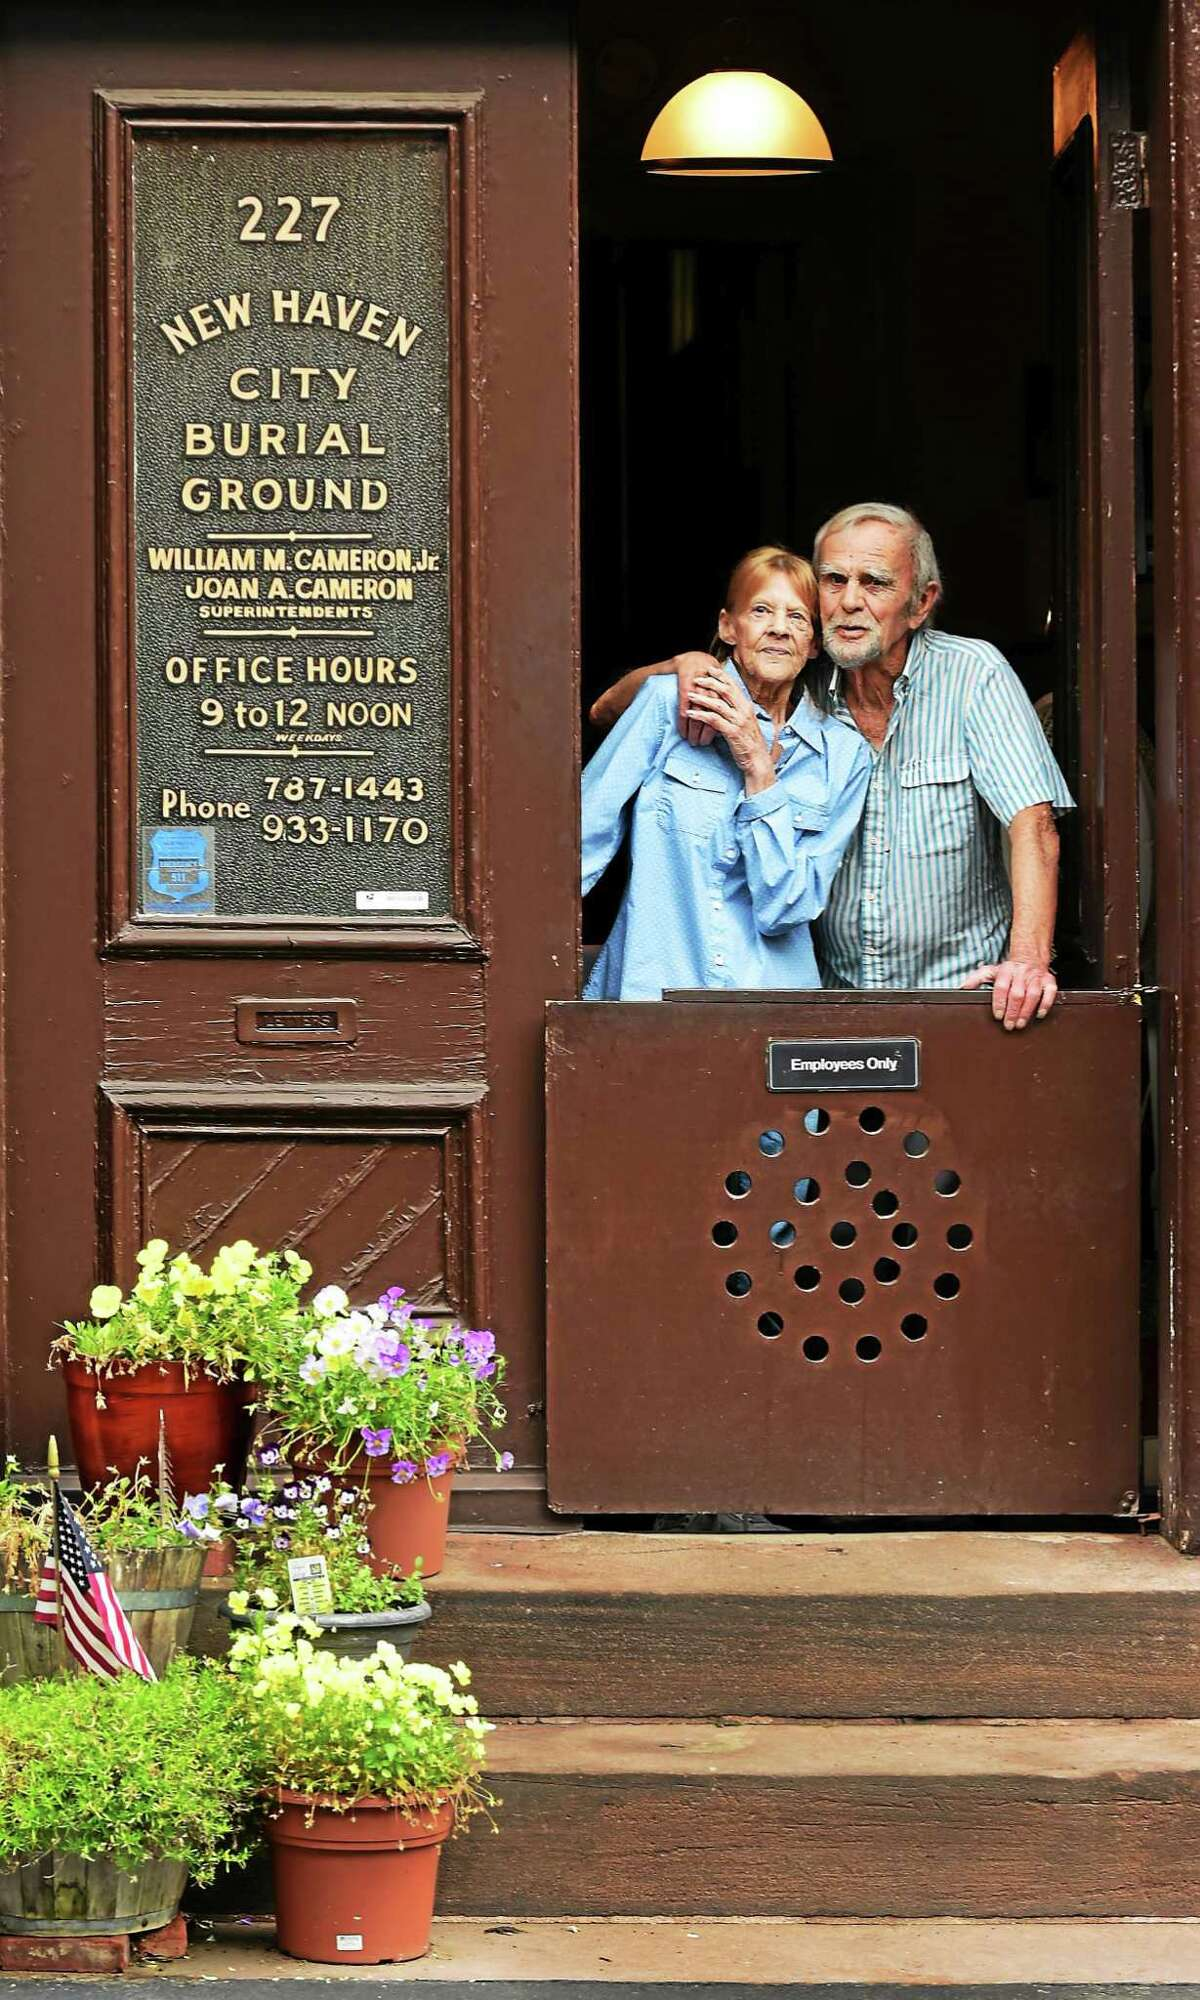 Joan Cameron and her husband, Bill Cameron, Jr., both superintendents of the Grove Street Cemetery, in New Haven, July 10, 2015.